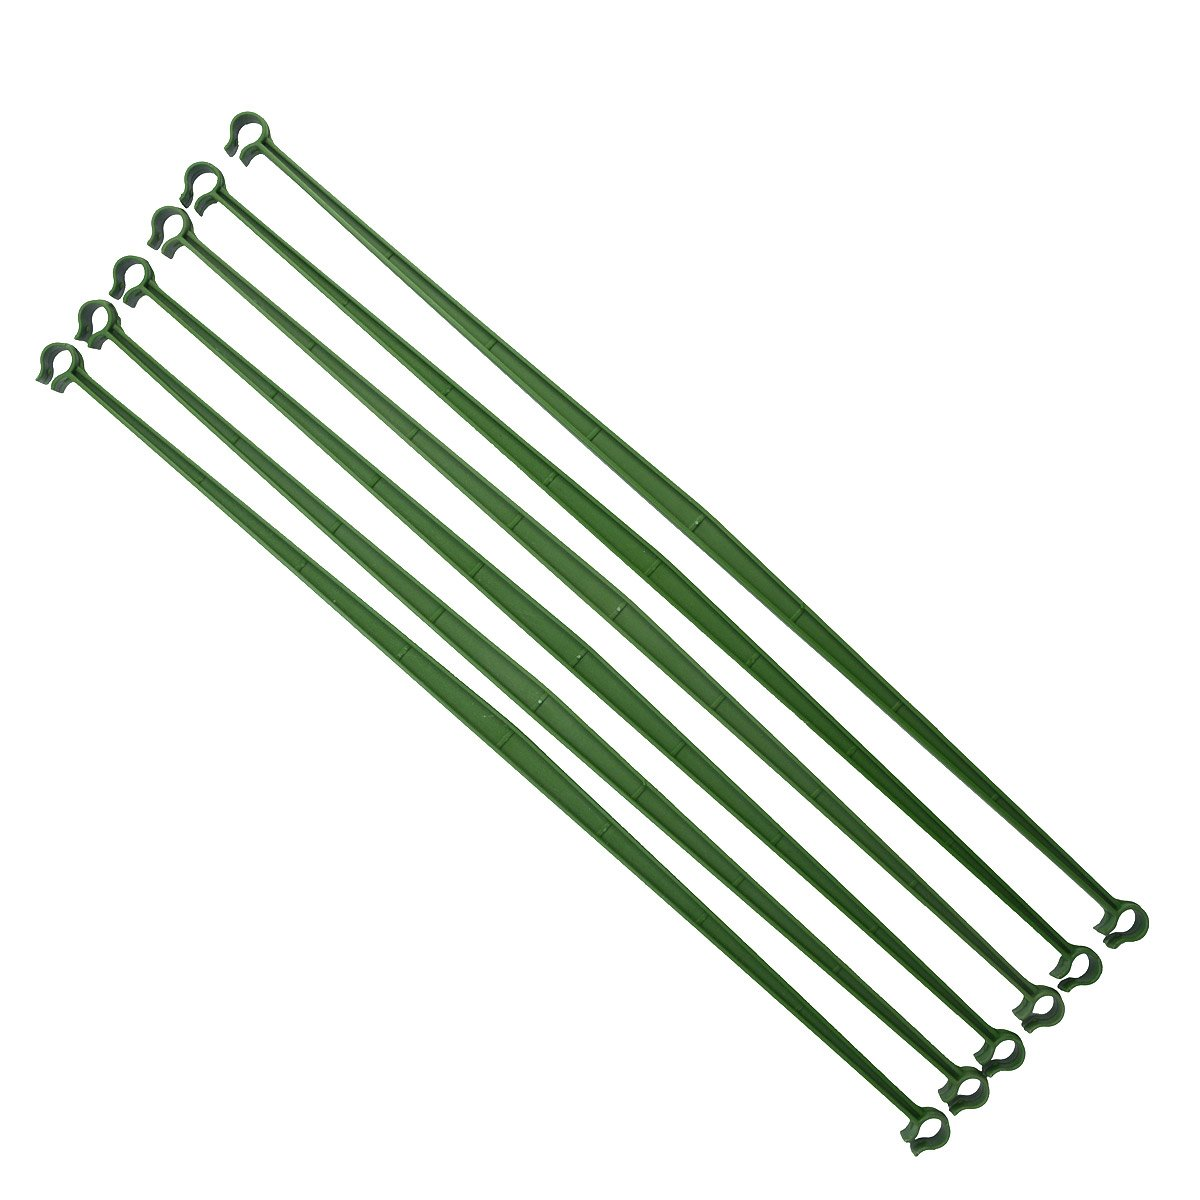 12Pcs Trellis Garden For Tomato Cage Connectors Attach Plant Stake Arms 18 Inches